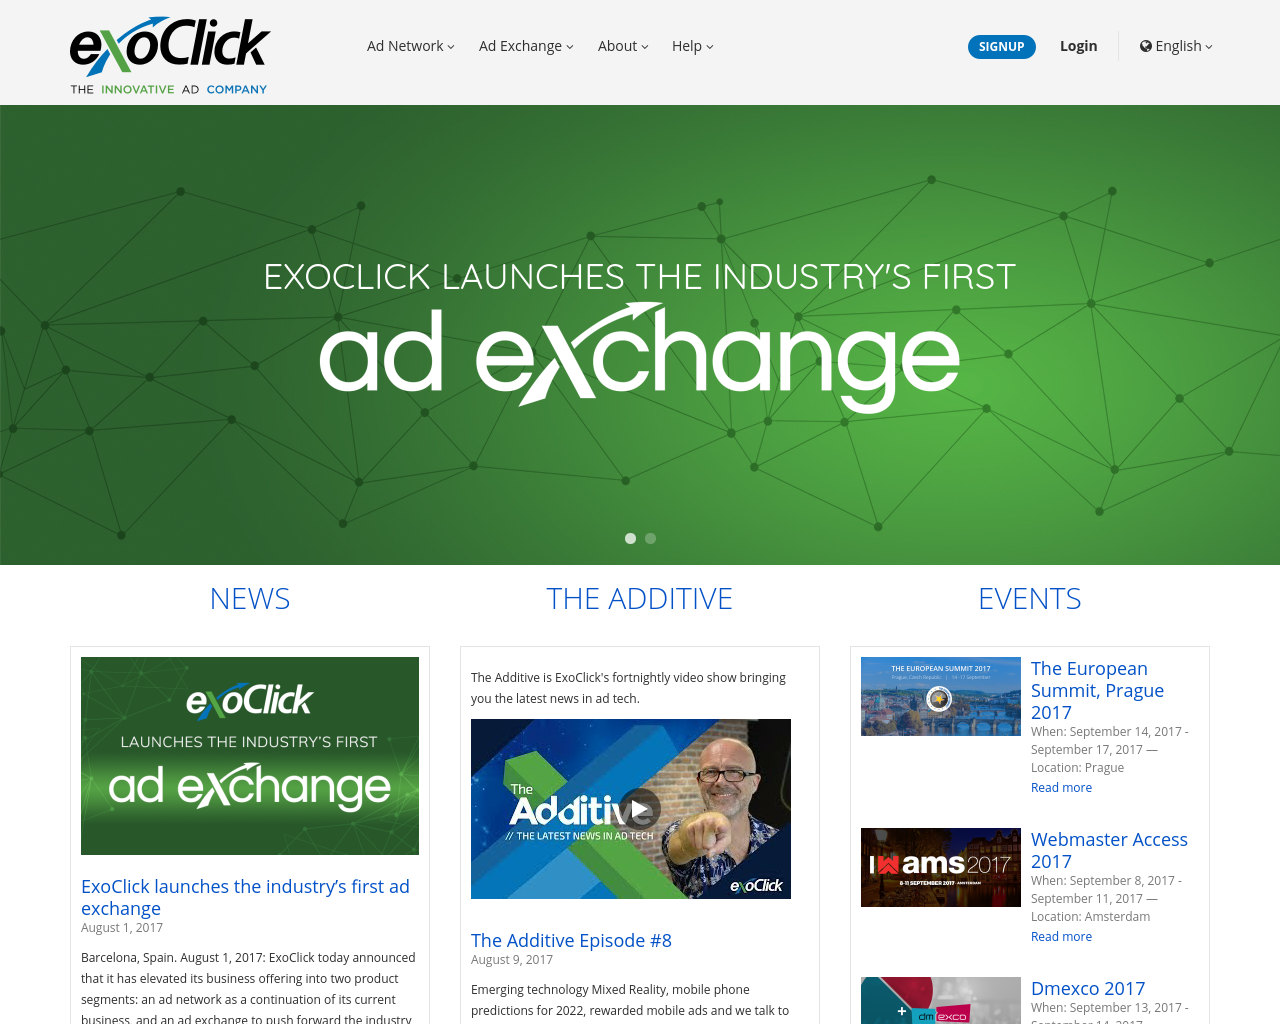 Exoclick-Advertising-Reviews-Pricing